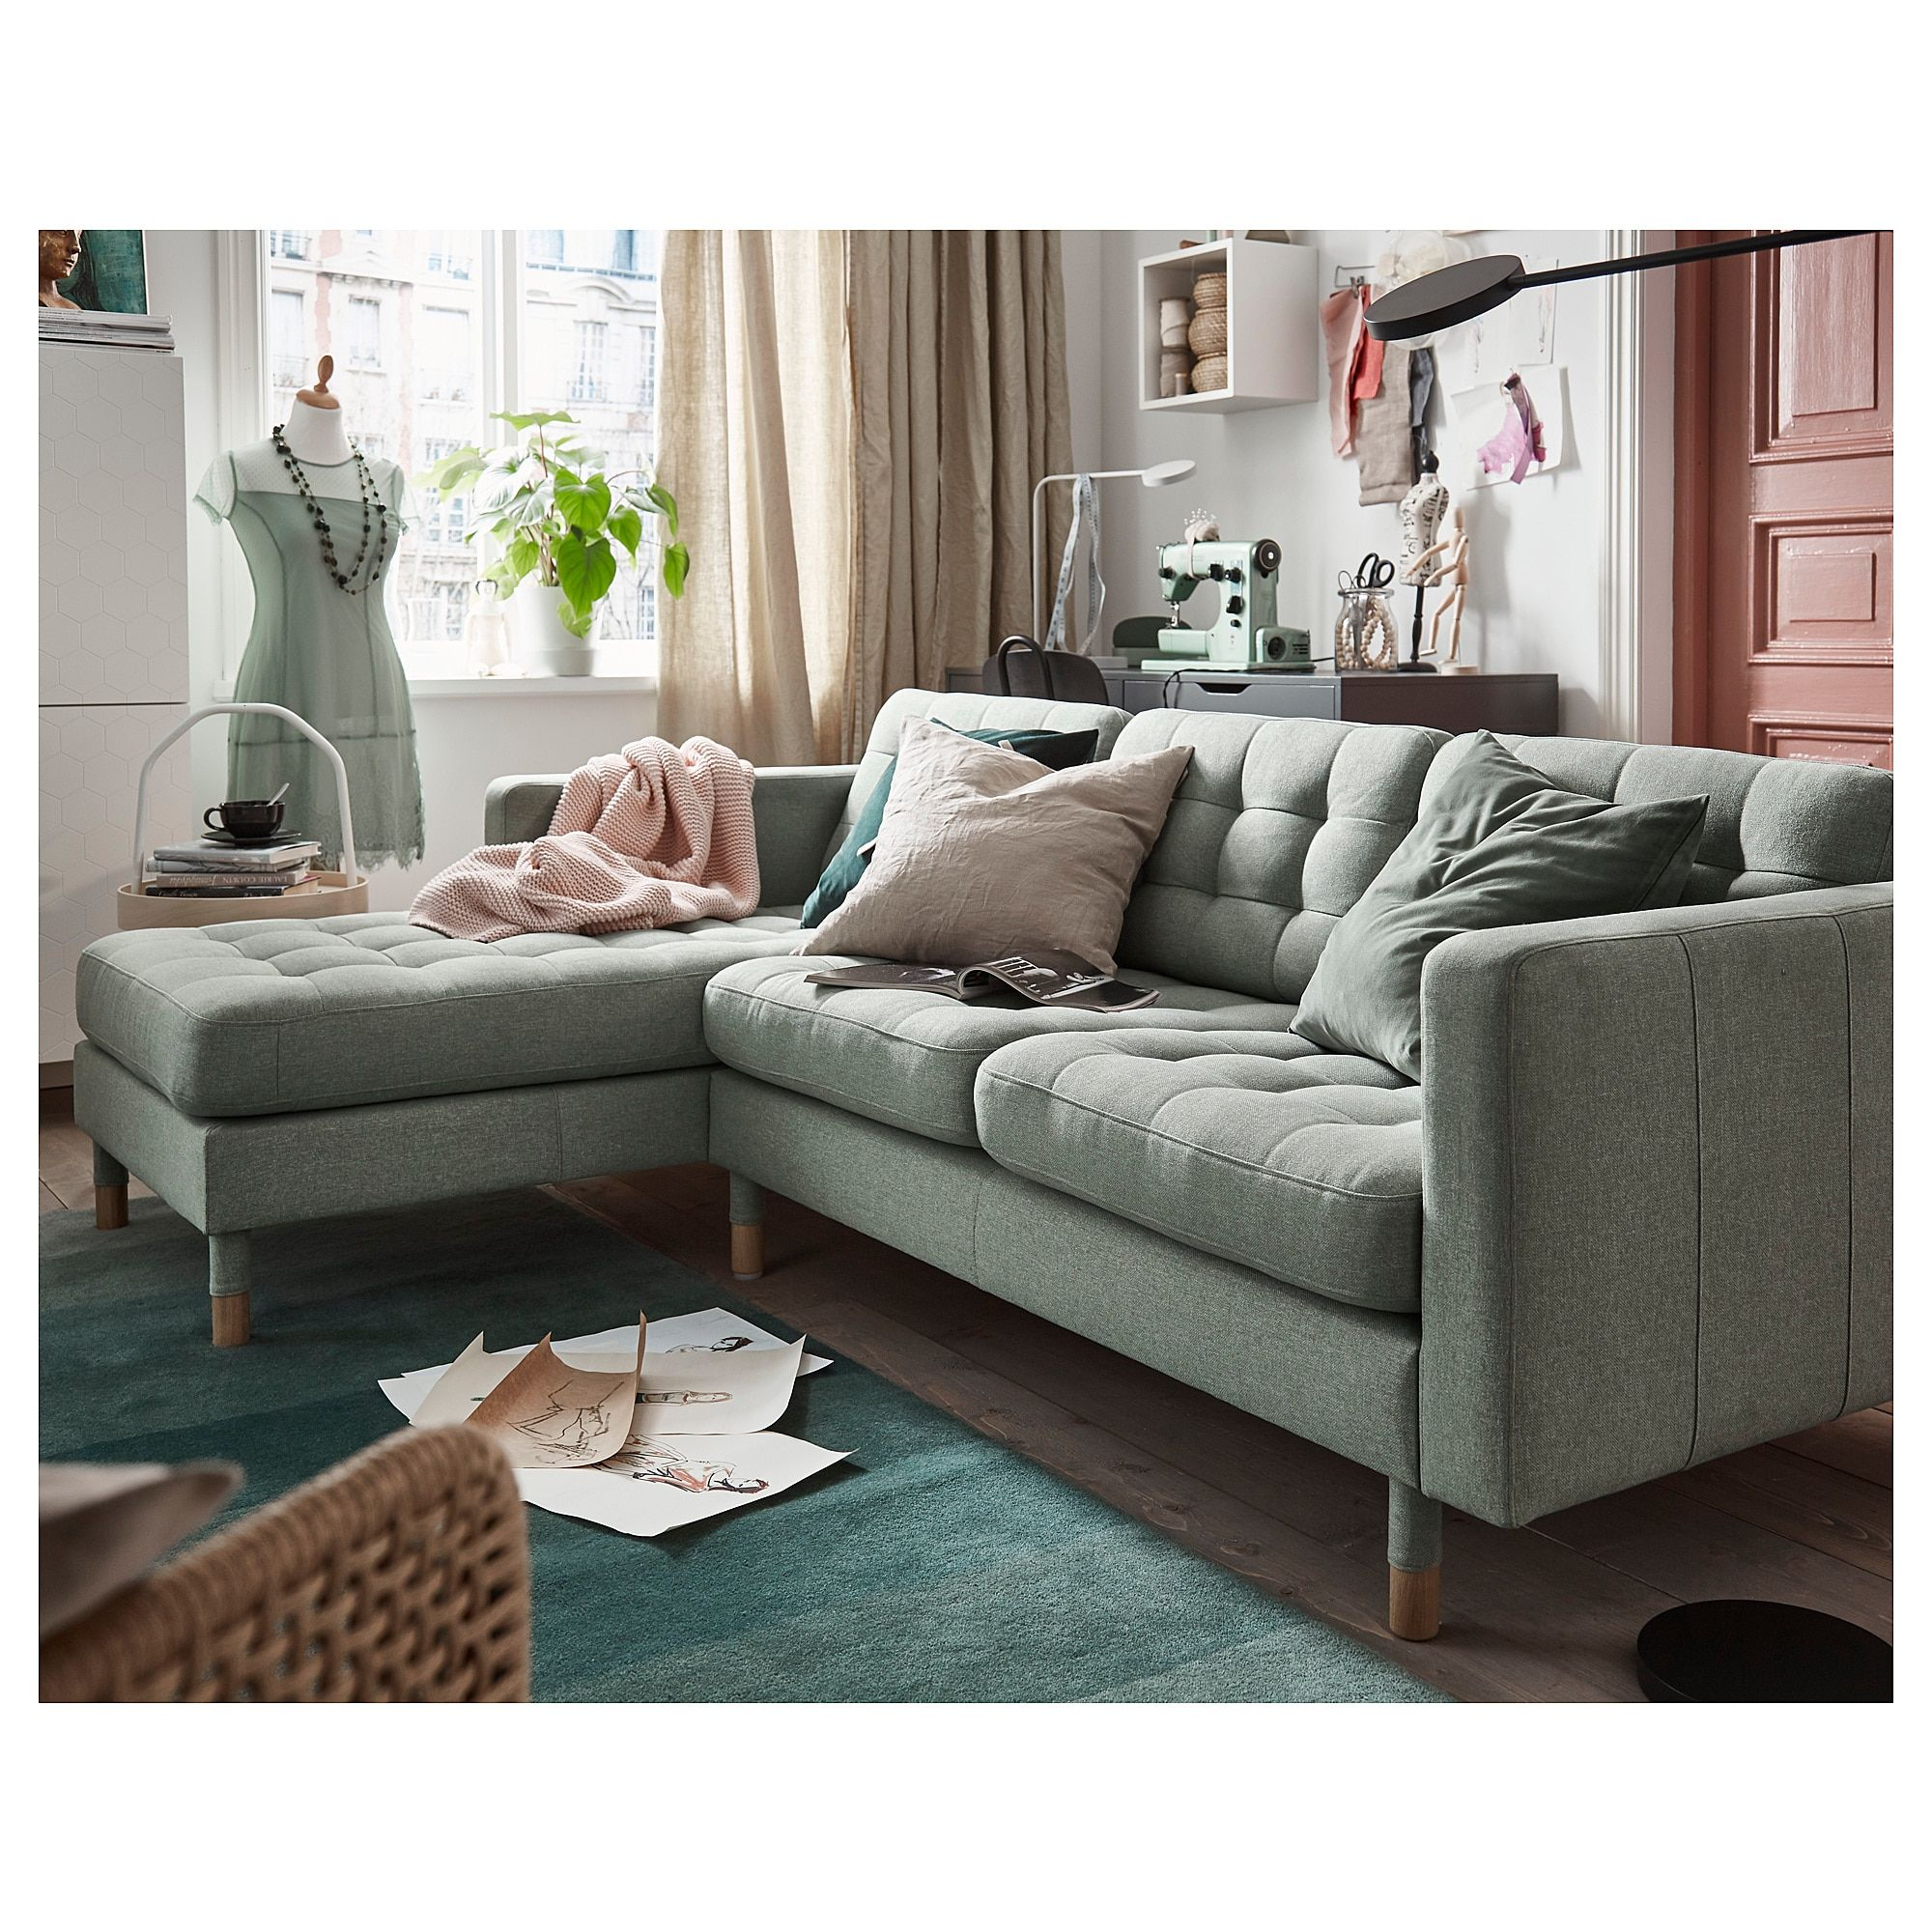 Landskrona 3 Sitssoffa Gunnared Ljusgron Hojd 78 Cm Ikea Landskrona Sofa Living Room Green Couches Living Room